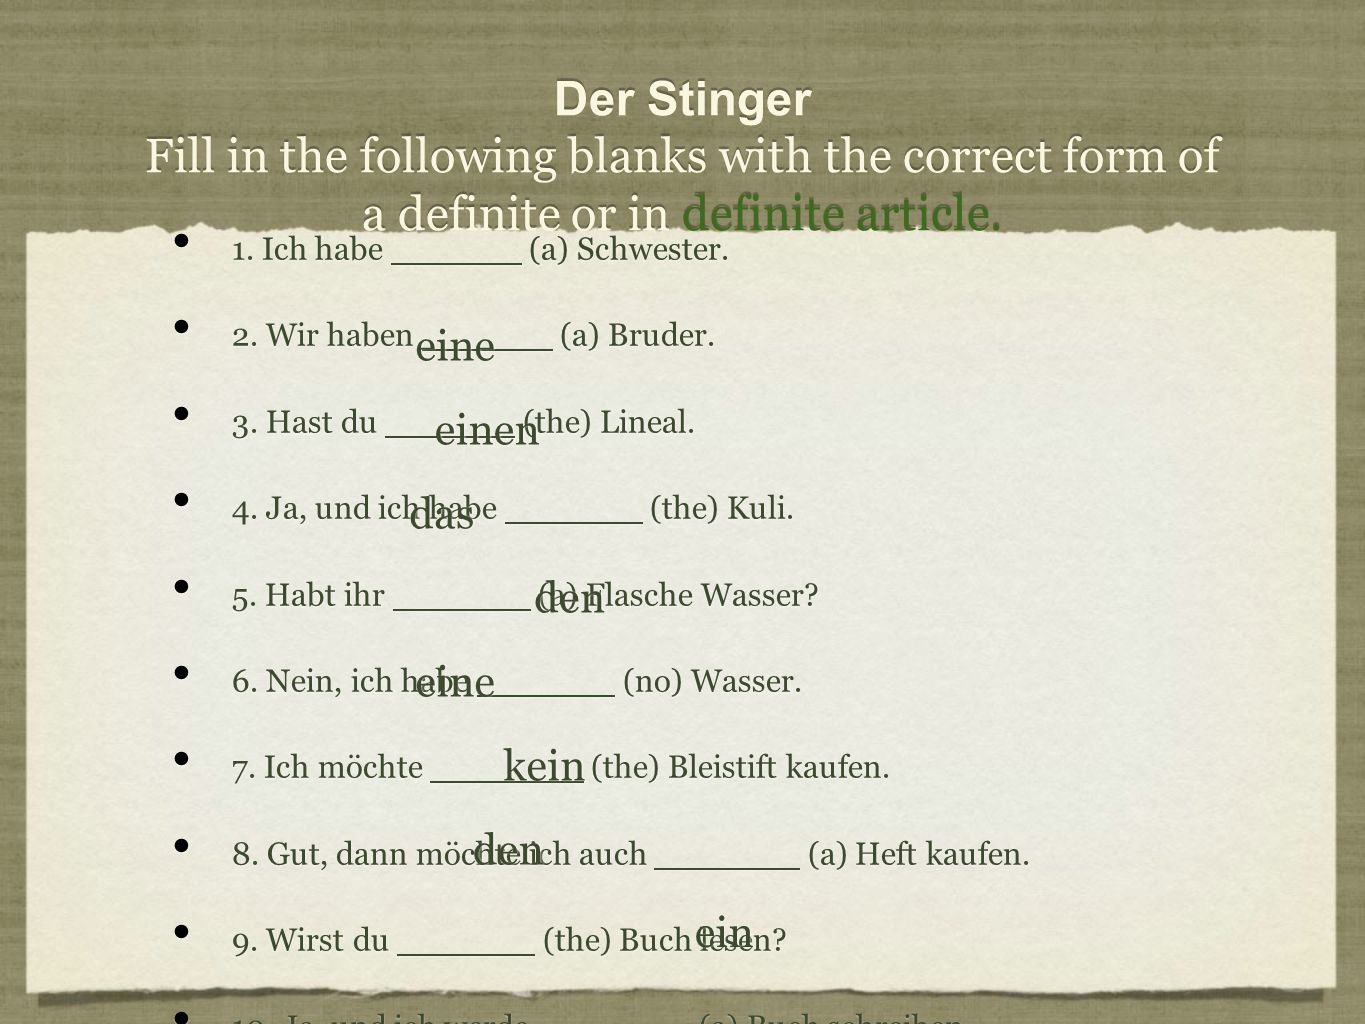 Der Stinger Fill in the following blanks with the correct form of a definite or in definite article.